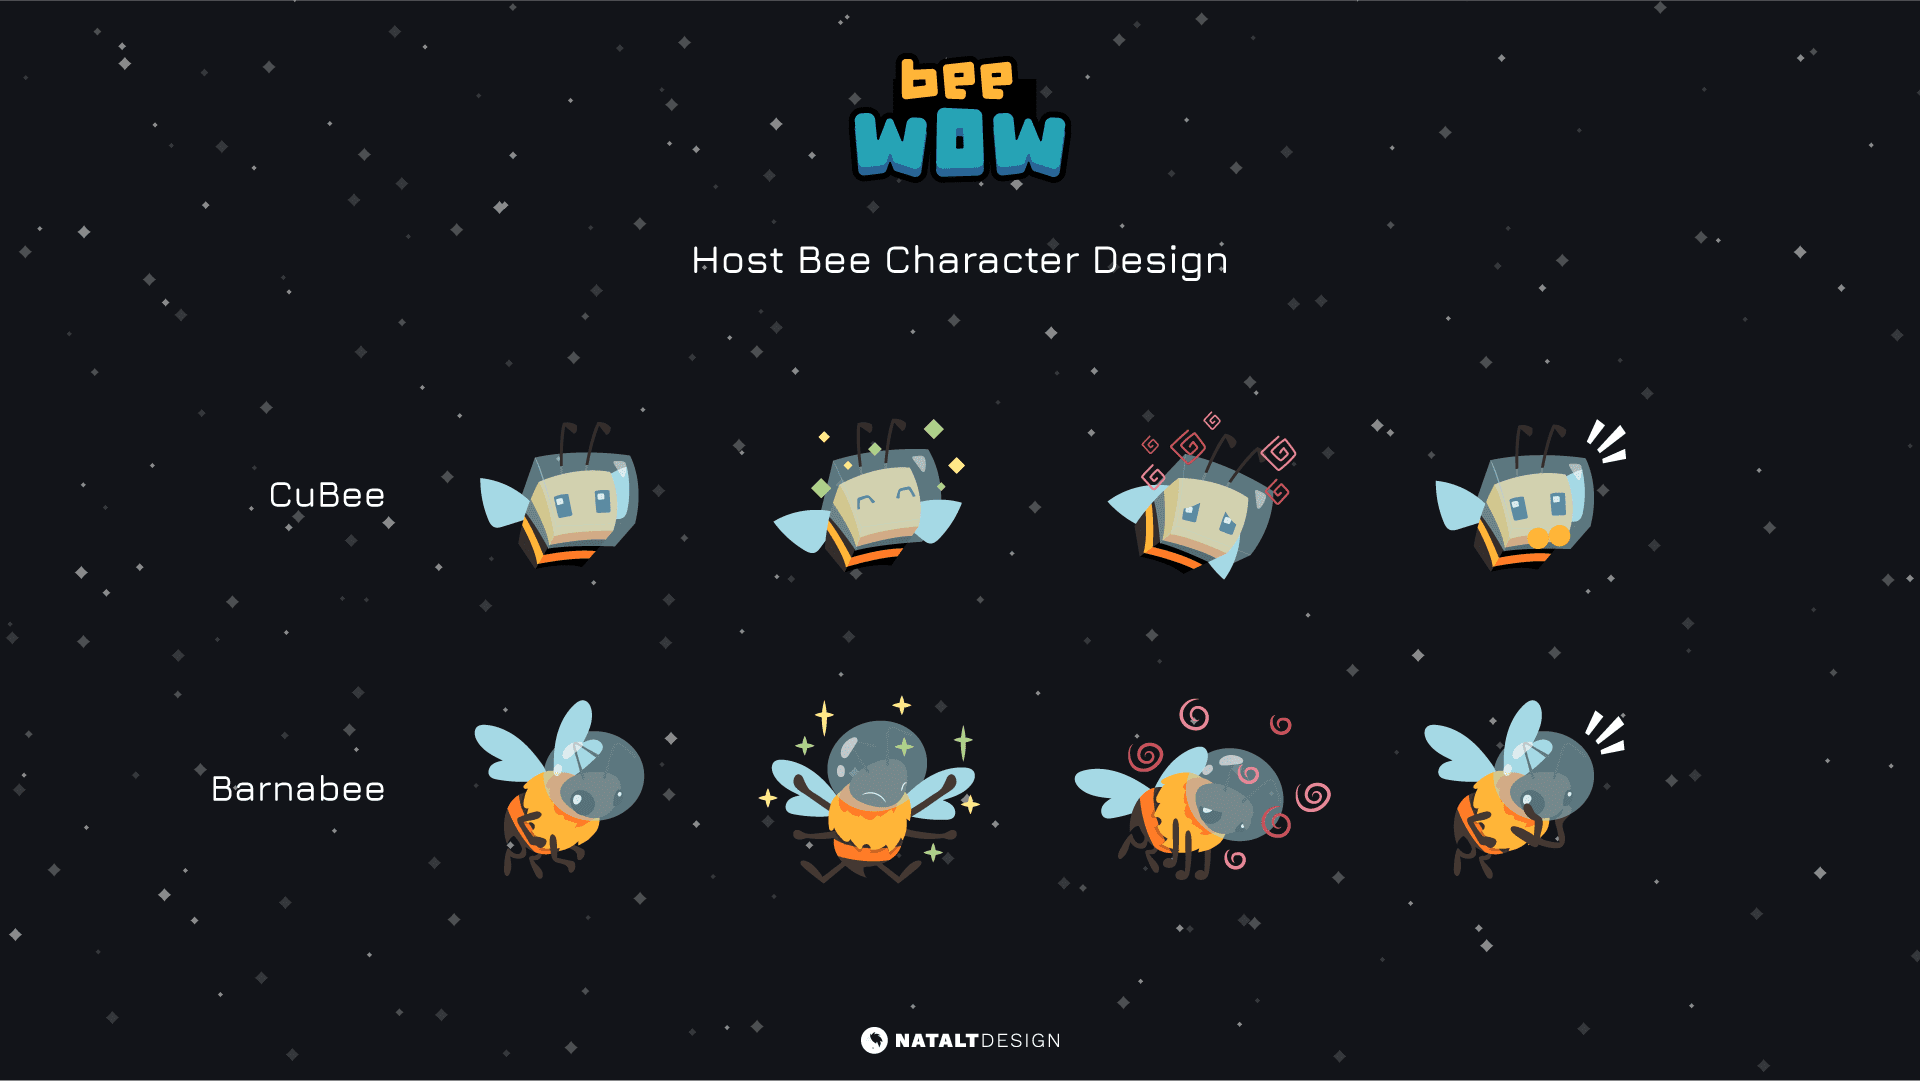 Bee wow character design